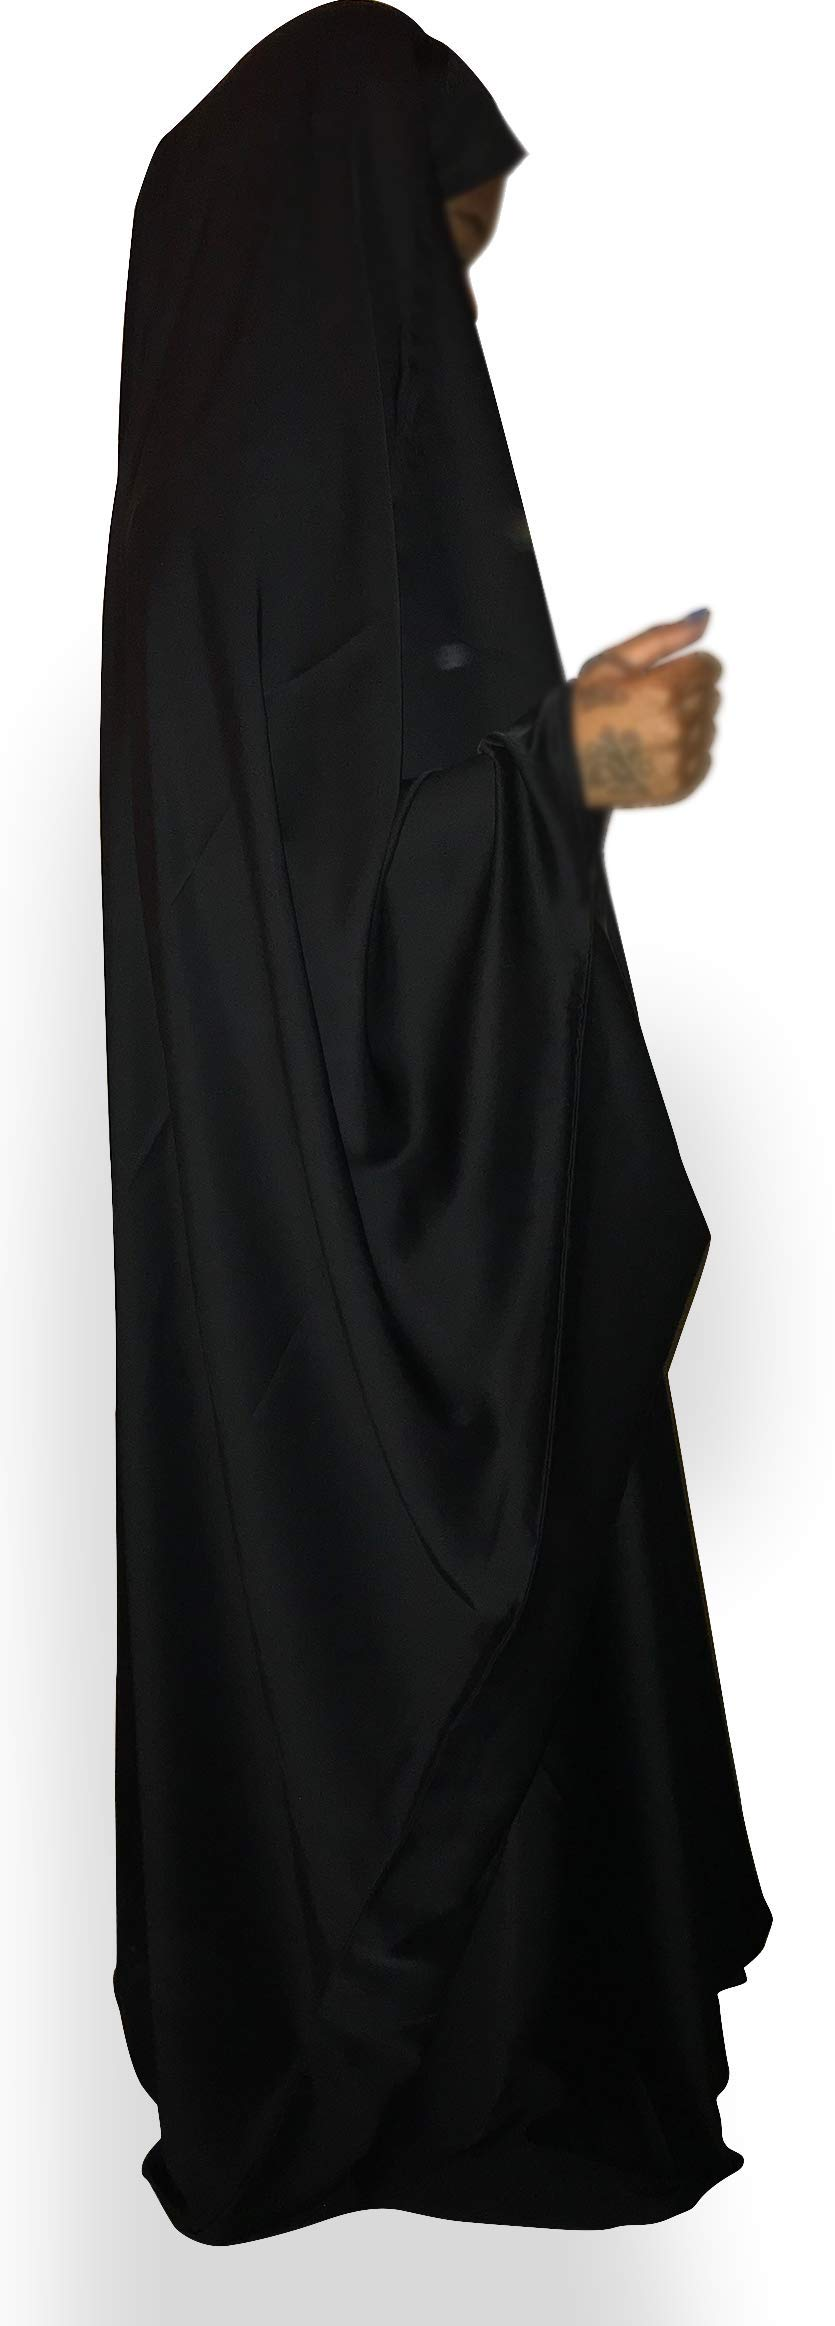 HSW Clothing Company 100% Silk Black Muslim Women Full Body Overhead Abaya Prayer Garment Small (X-Large)